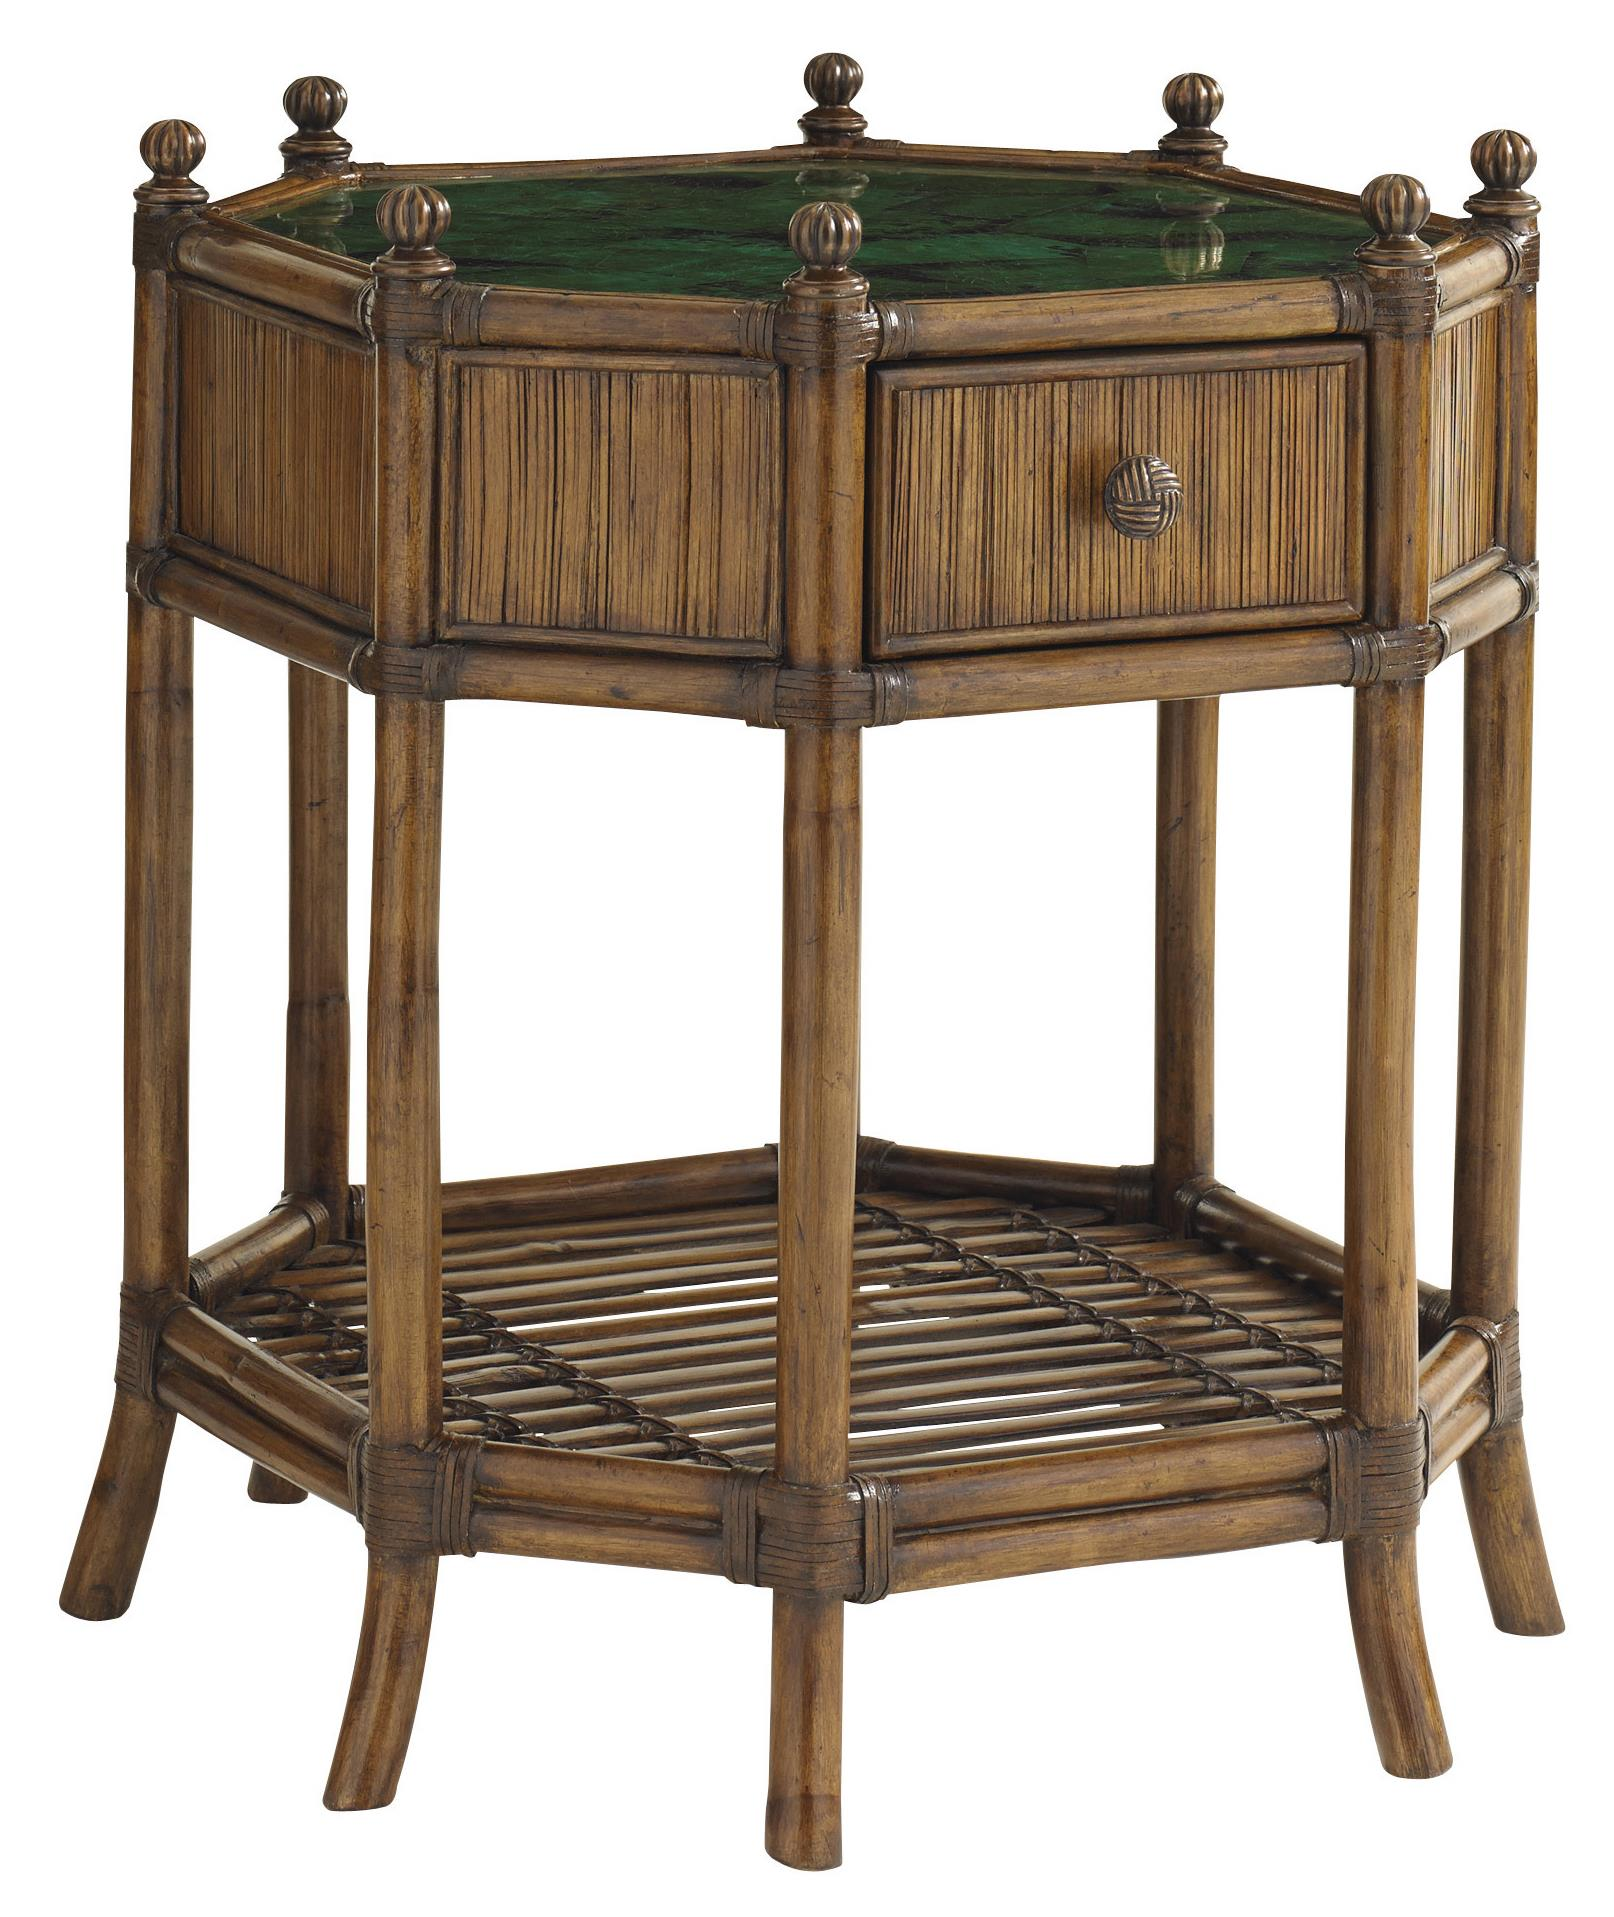 Bali Hai Flamingo Octagonal End Table by Tommy Bahama Home at Baer's Furniture